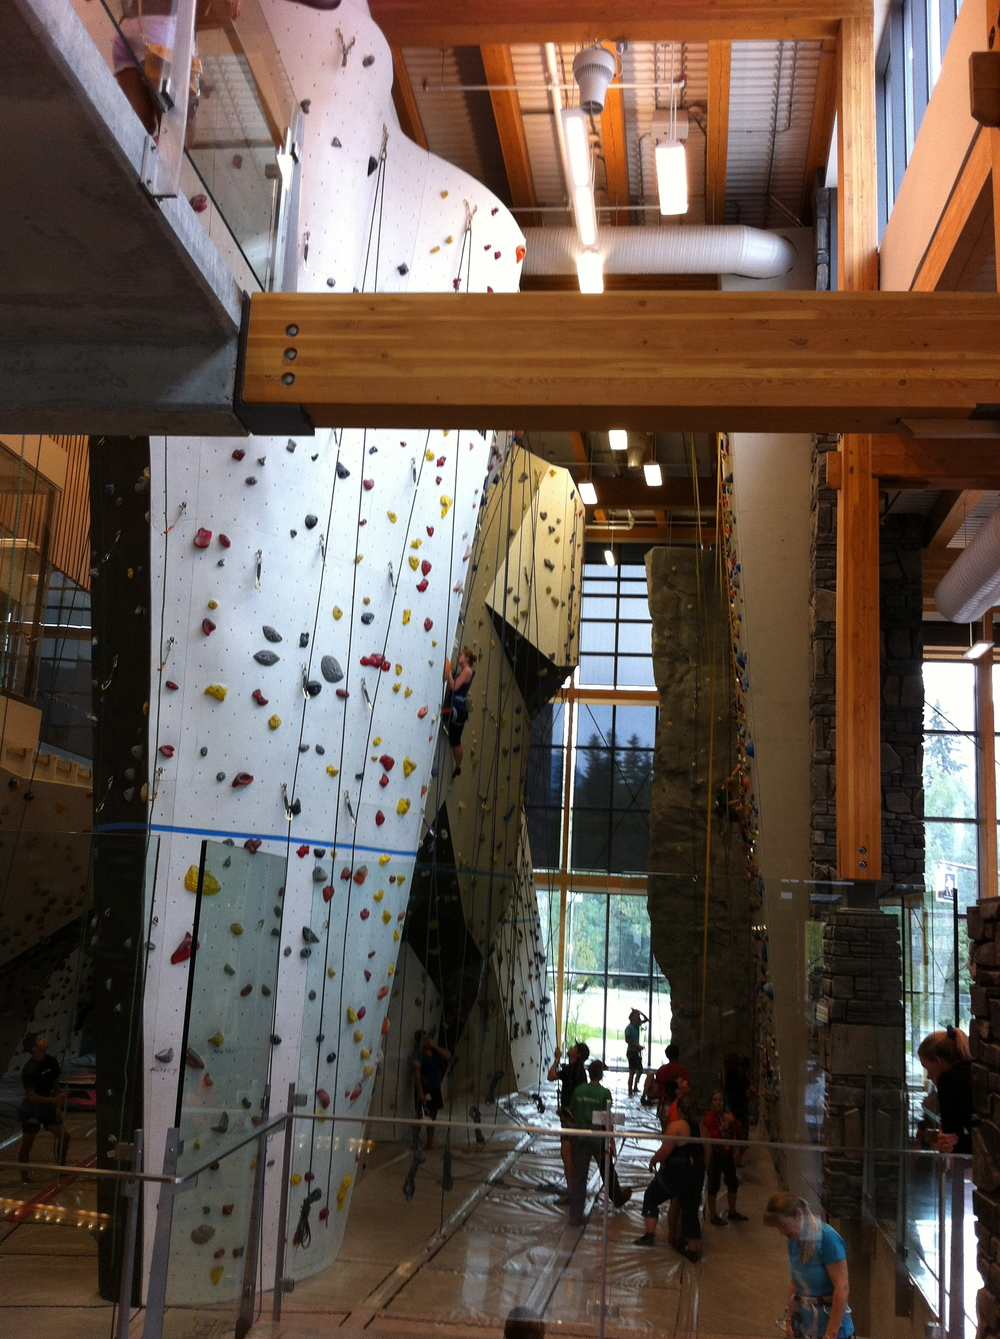 The climbing wall located on the main floor of the new Canmore, Alberta recreation centre bears a striking resemblance to an office lobby with its two floor open ceiling. Sure beats a sterile office lobby for animation.